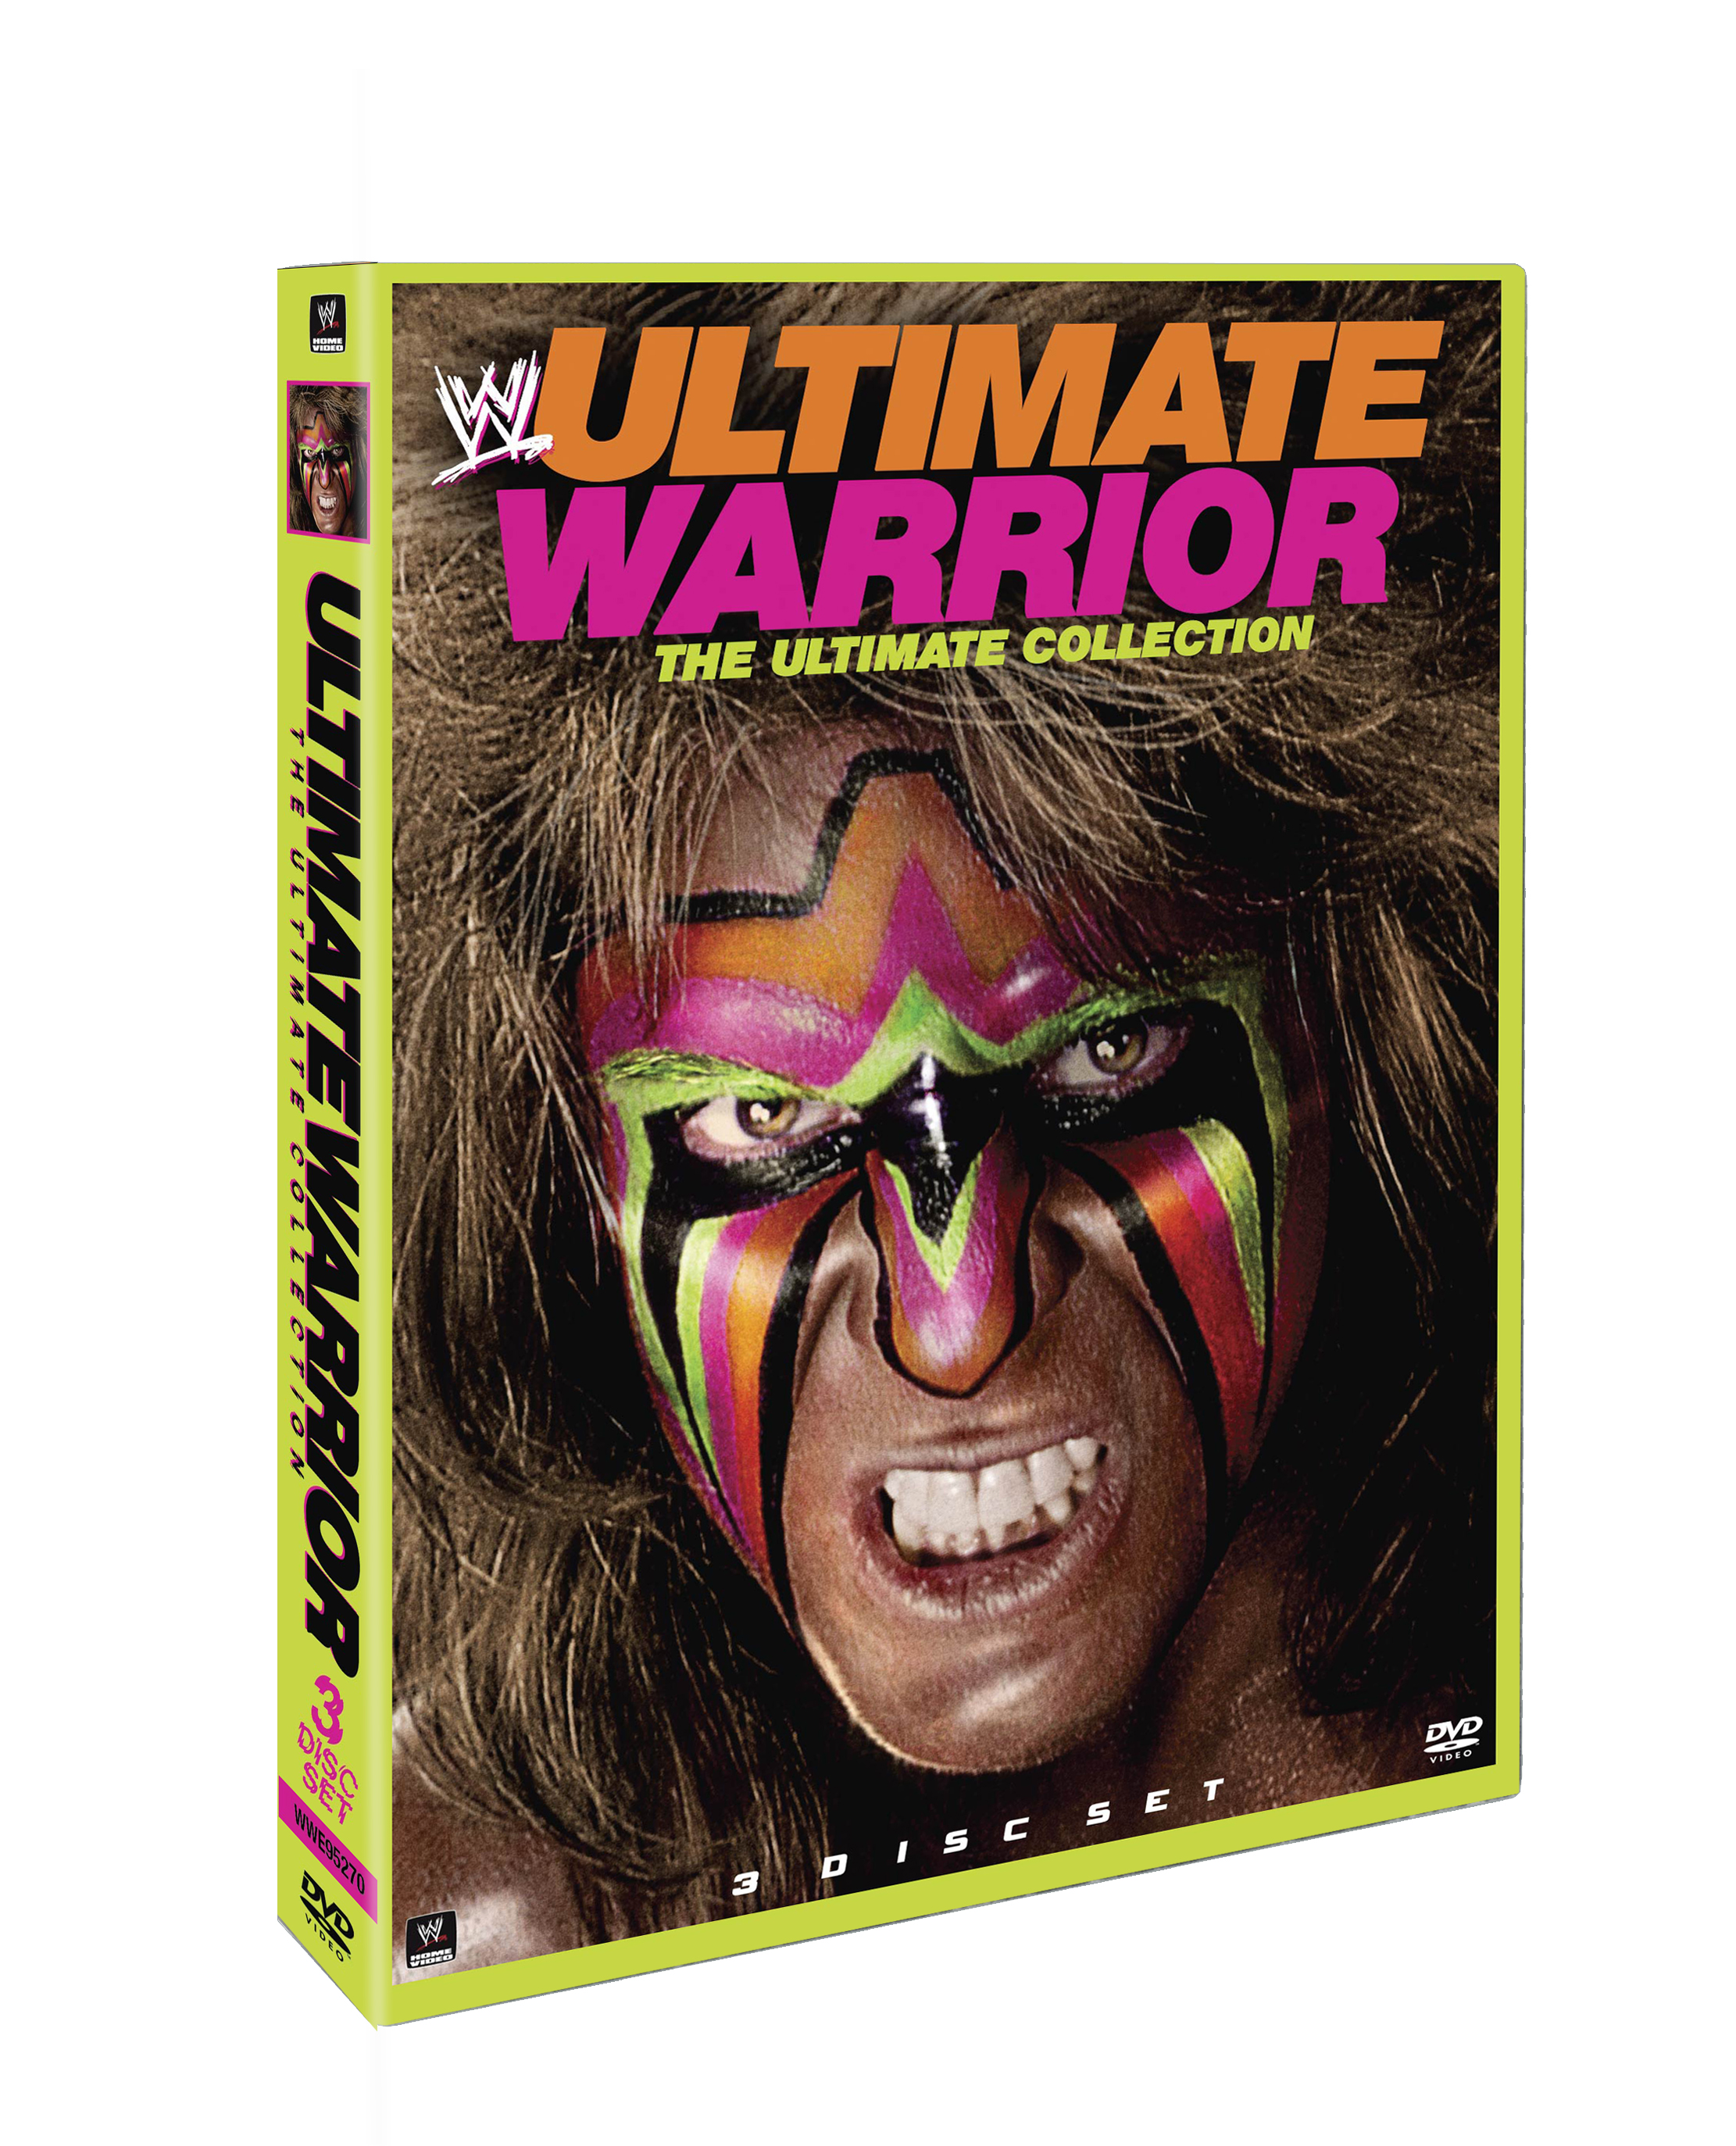 Ultimate Warrior - The Ultimate Collection Cover Art